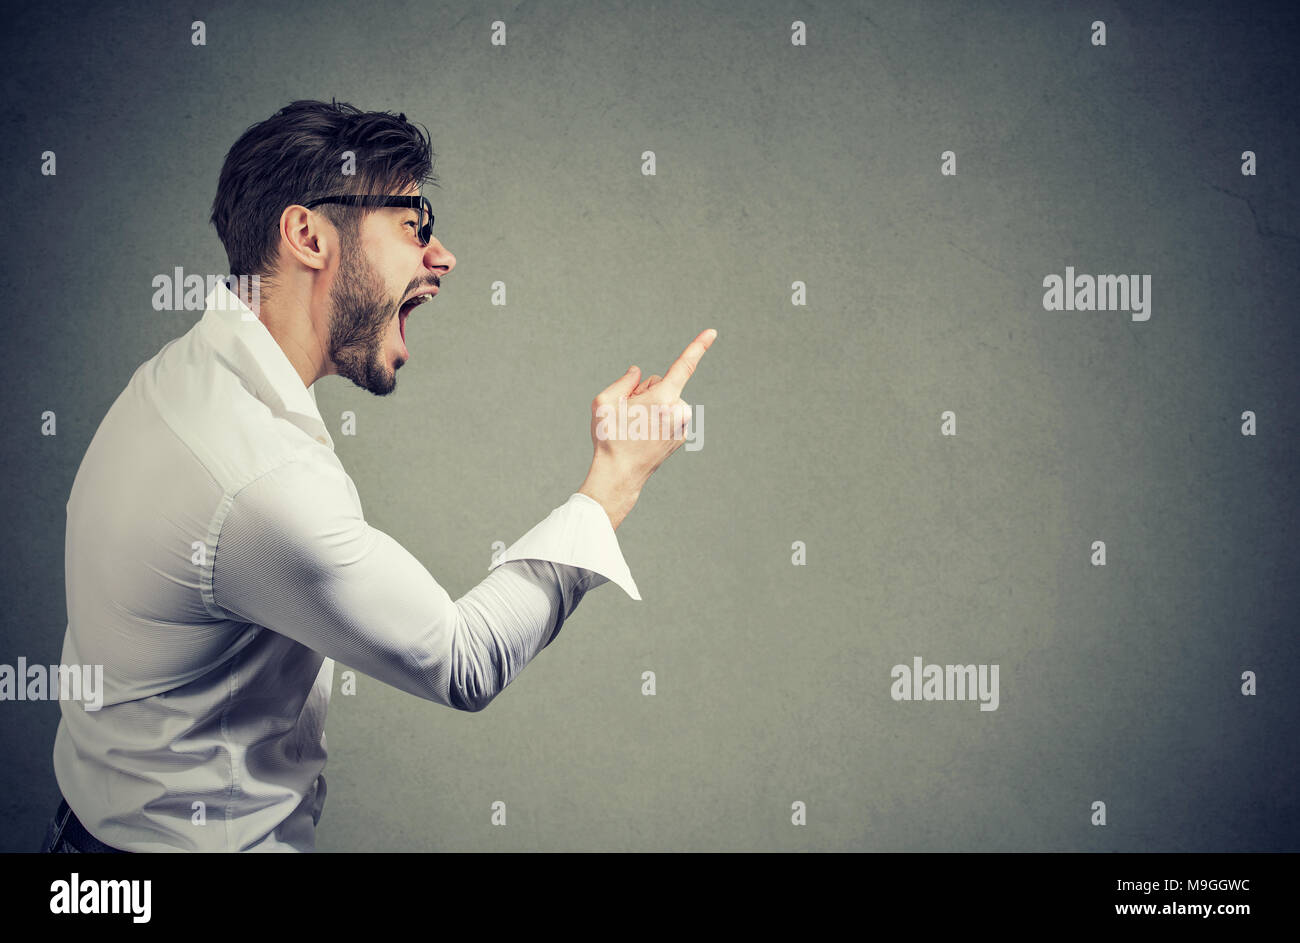 Side view of man threatening with finger while shouting loudly and looking away. - Stock Image